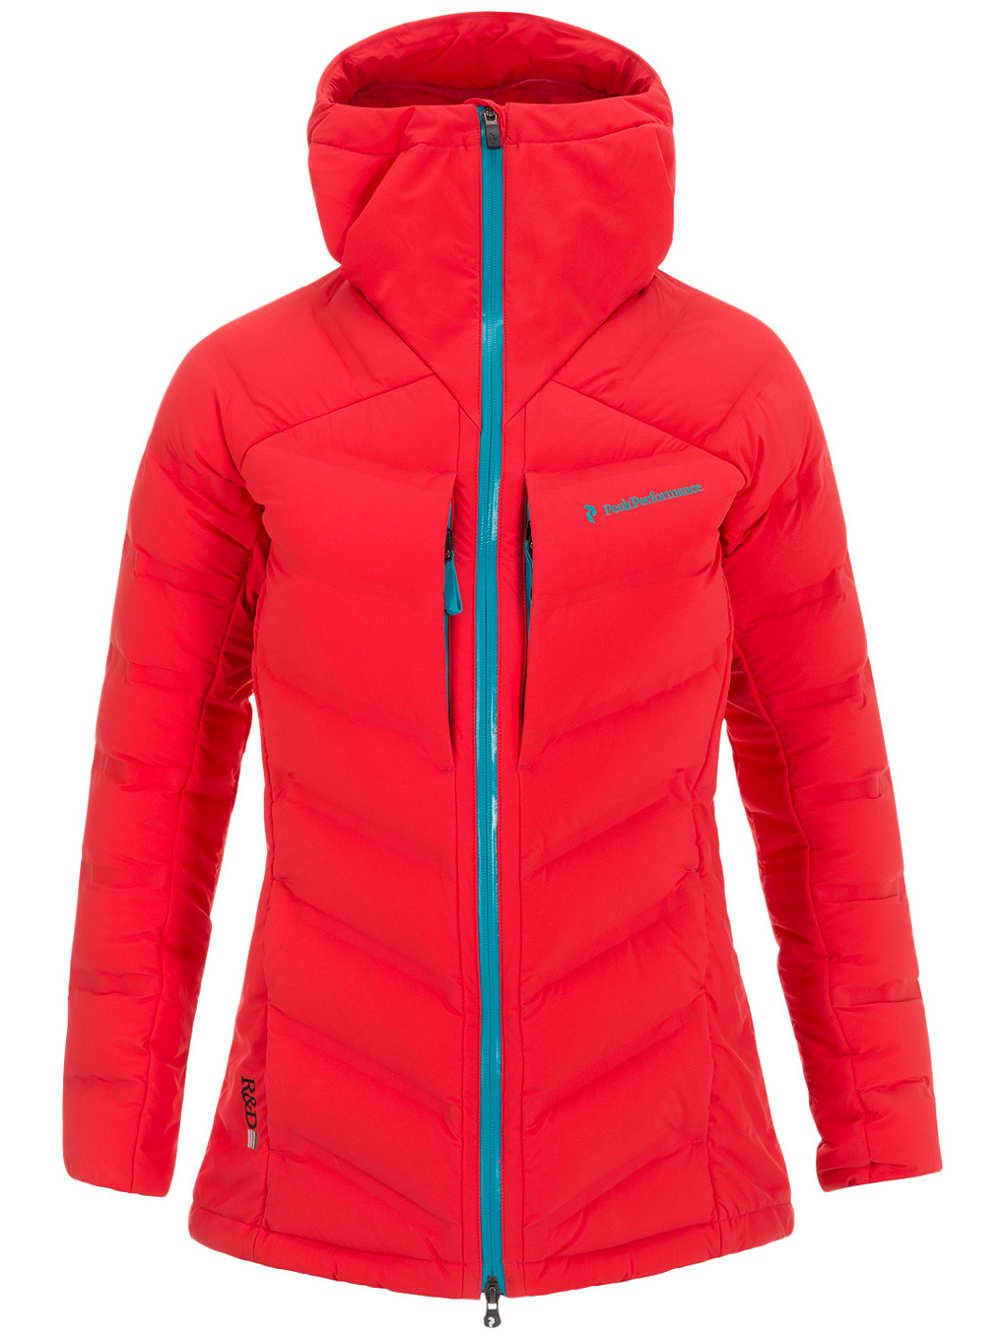 Damen Snowboard Jacke Peak Performance Heli Heat Jacket